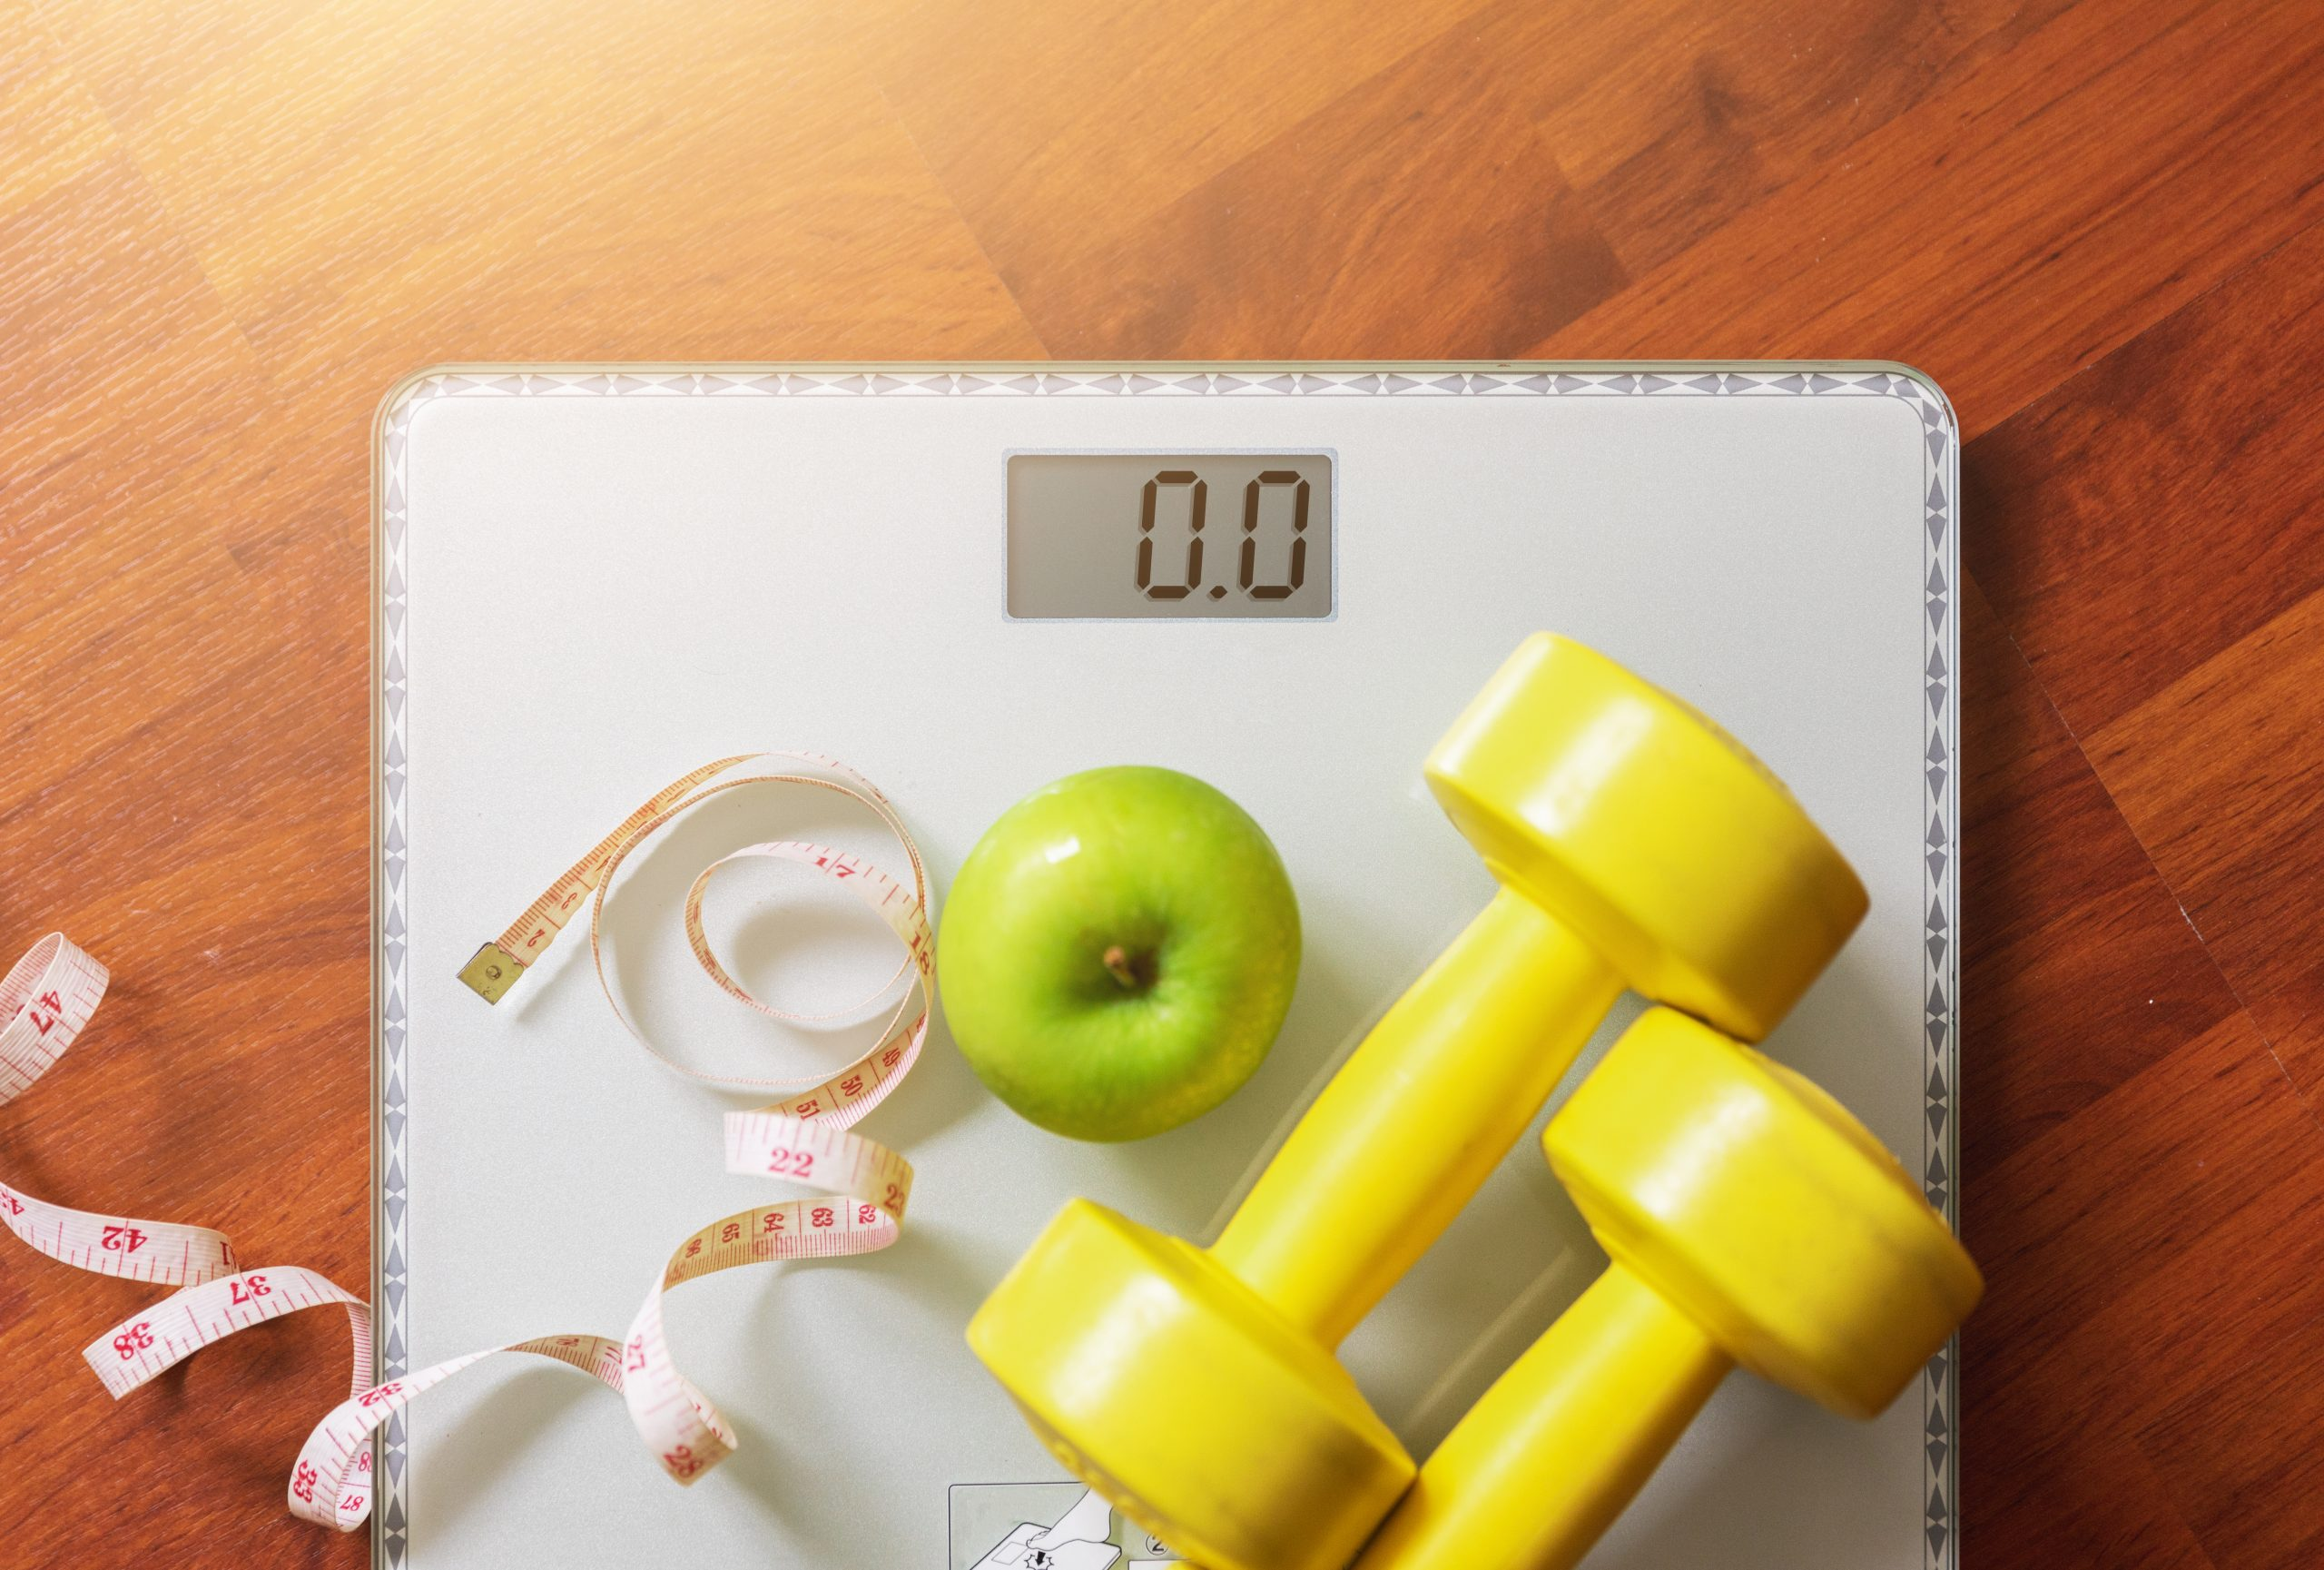 fruit, dumbbell and scale, fat burn and weight loss concept, diet